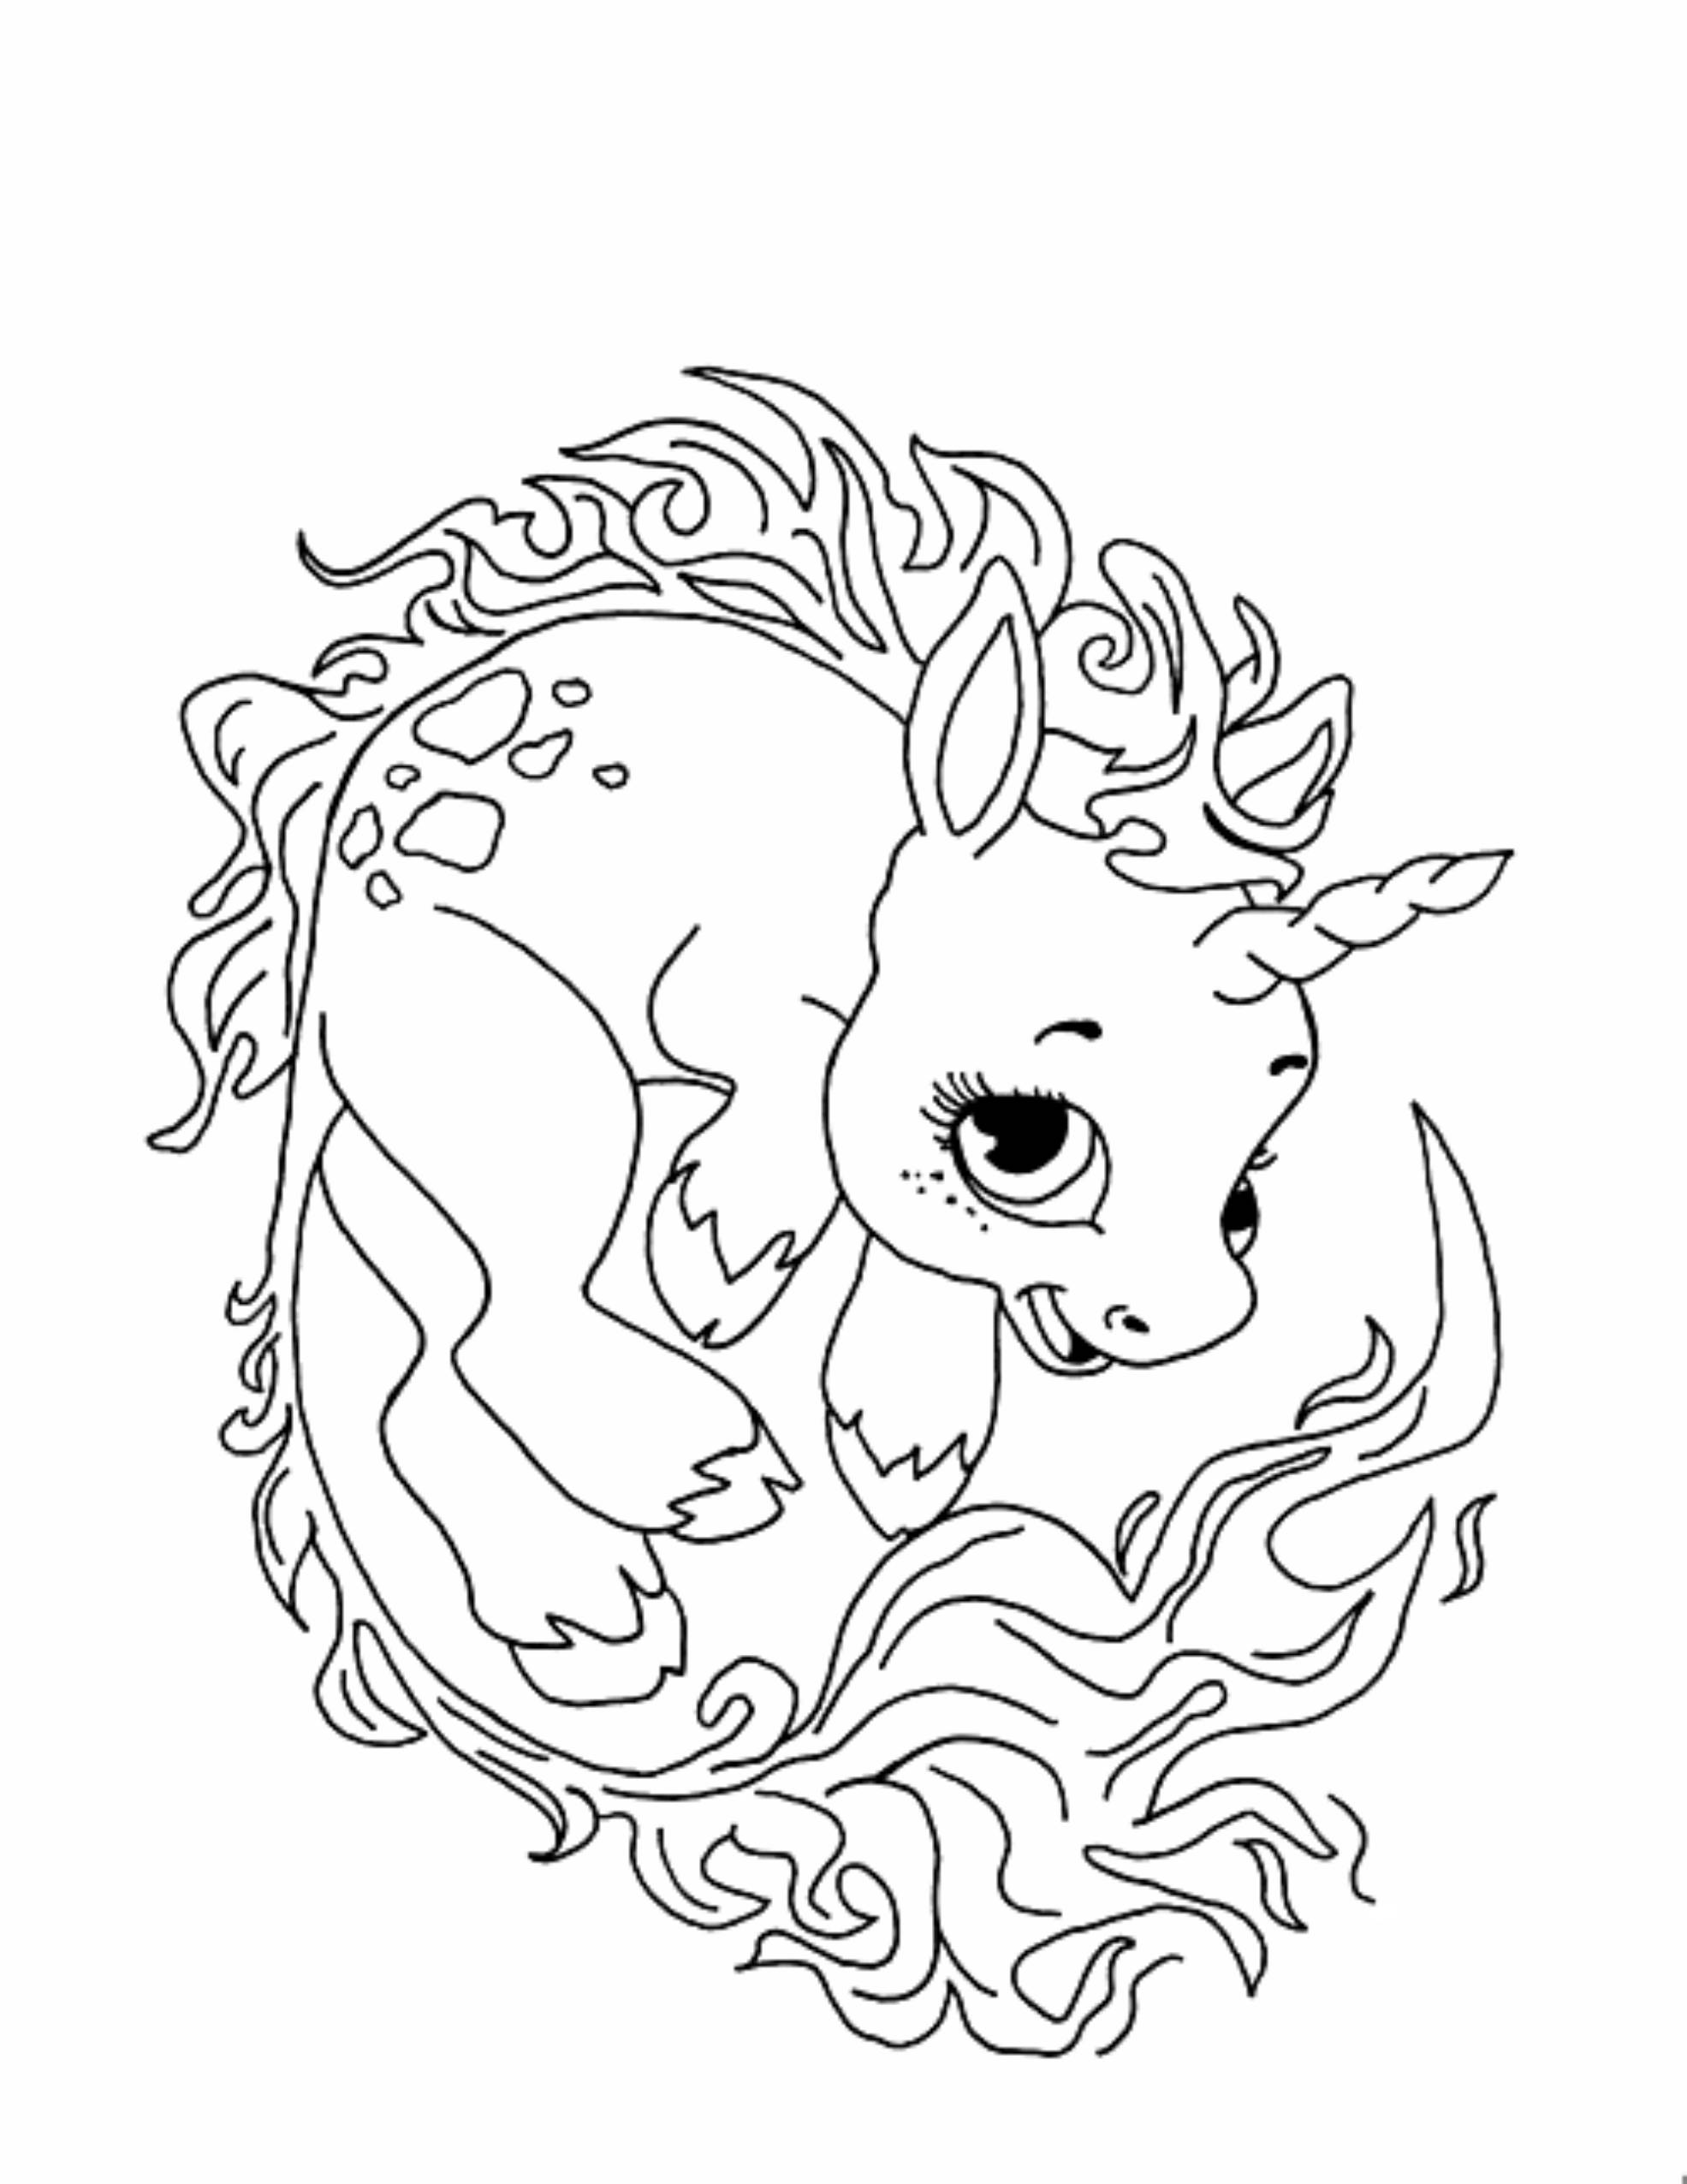 coloring for unicorn baby unicorn coloring pages at getcoloringscom free coloring for unicorn